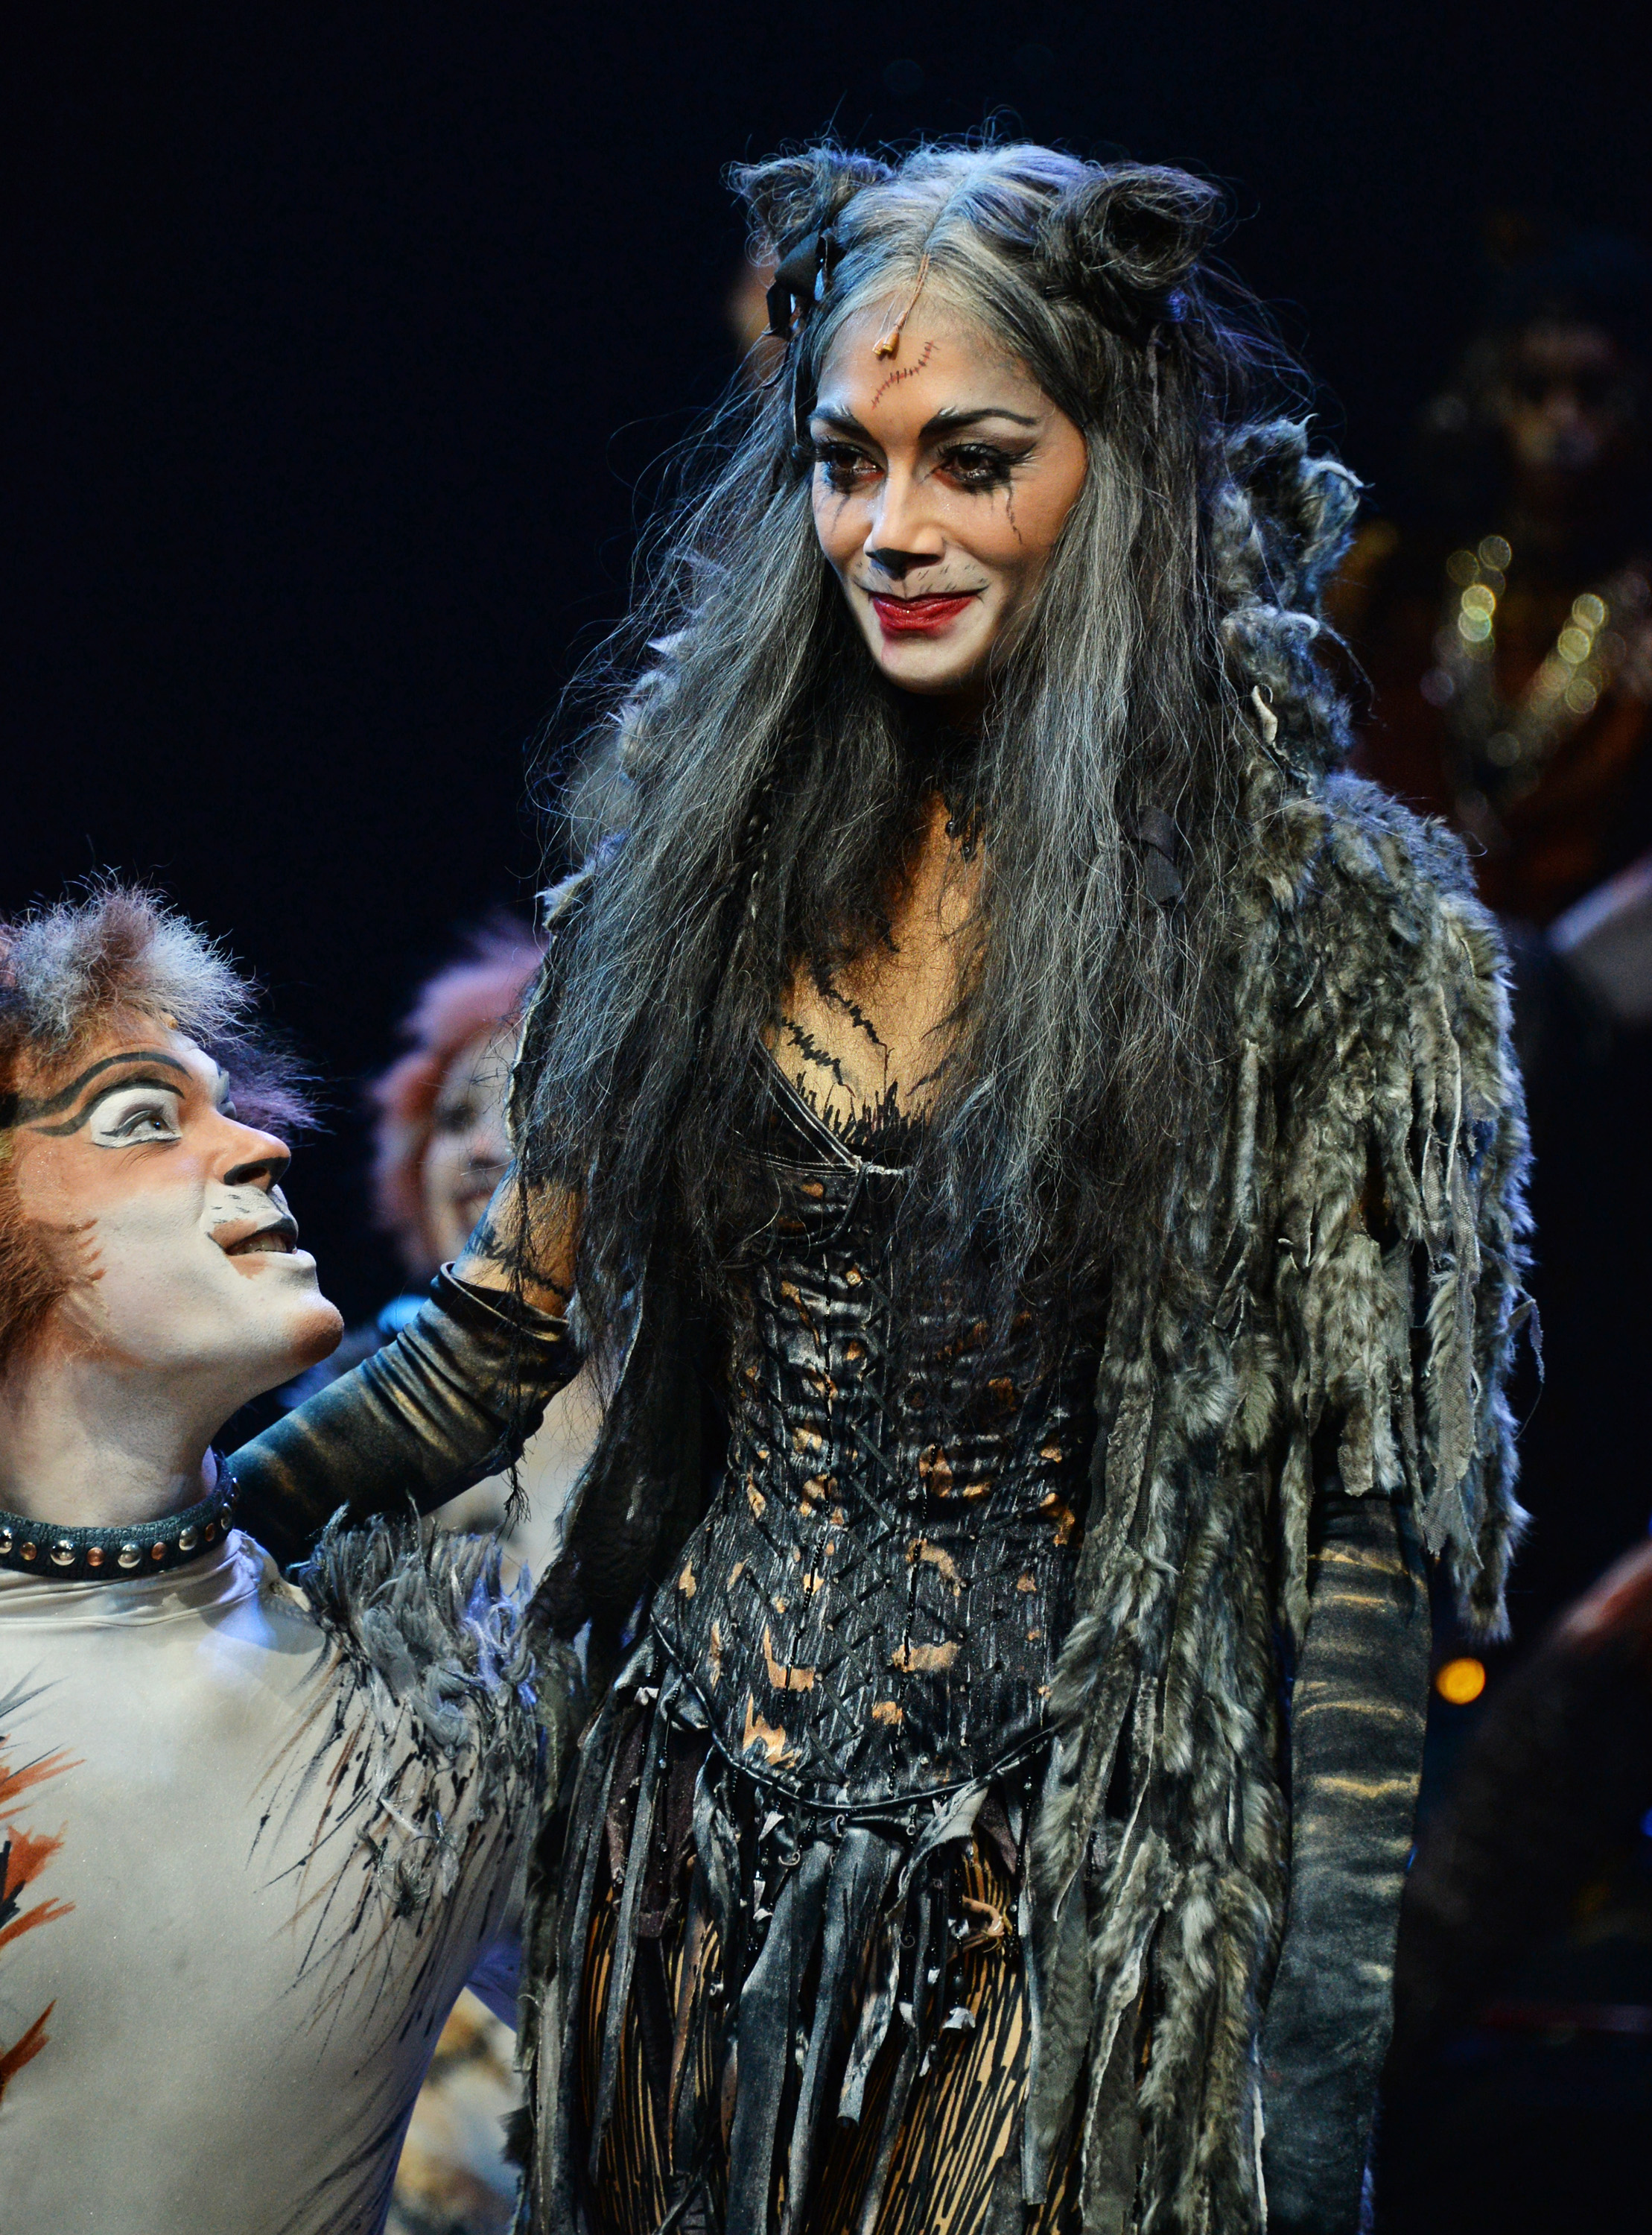 Nicole Scherzinger bows at the curtain call during the press night performance of  Cats  at the London Palladium on Dec. 11, 2014 in London.